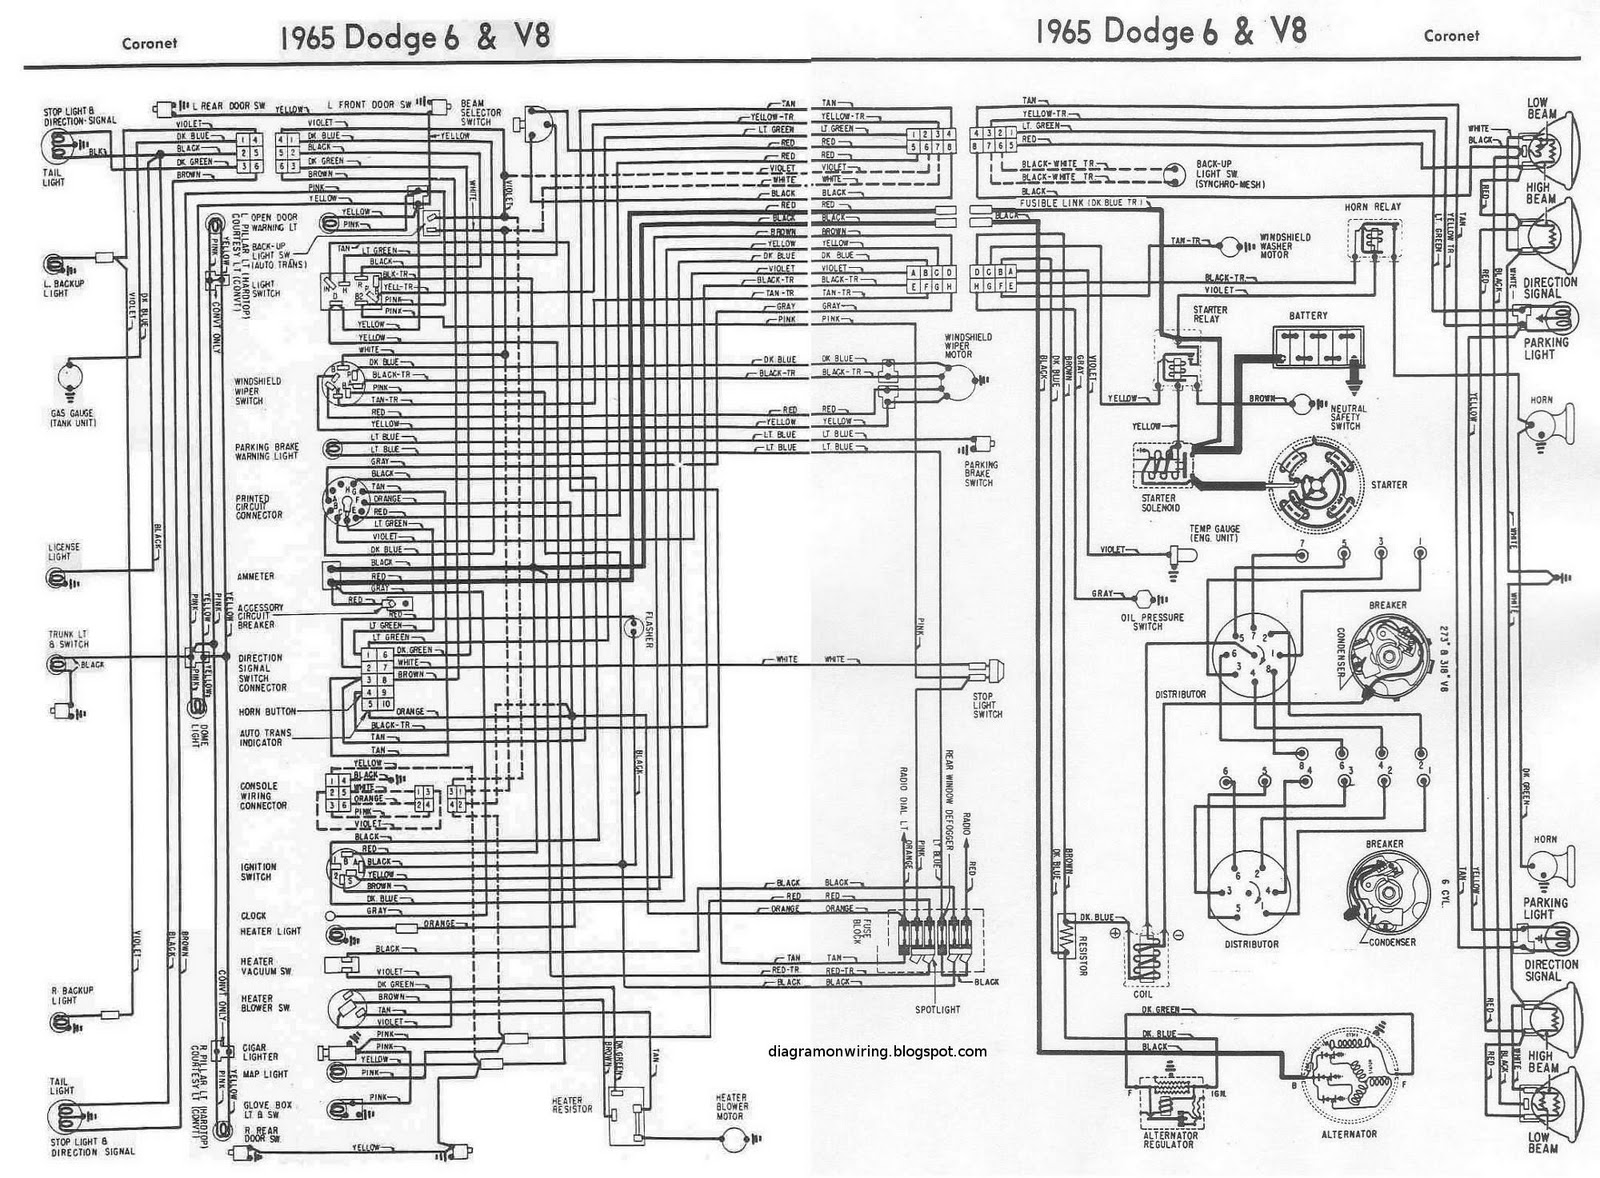 1965+Dodge+6+and+V8+Coronet+Complete+Electrical+Wiring+Diagram dodge 6 and v8 coronet 1965 complete wiring diagram all about 1970 dodge coronet wiring diagram at gsmportal.co